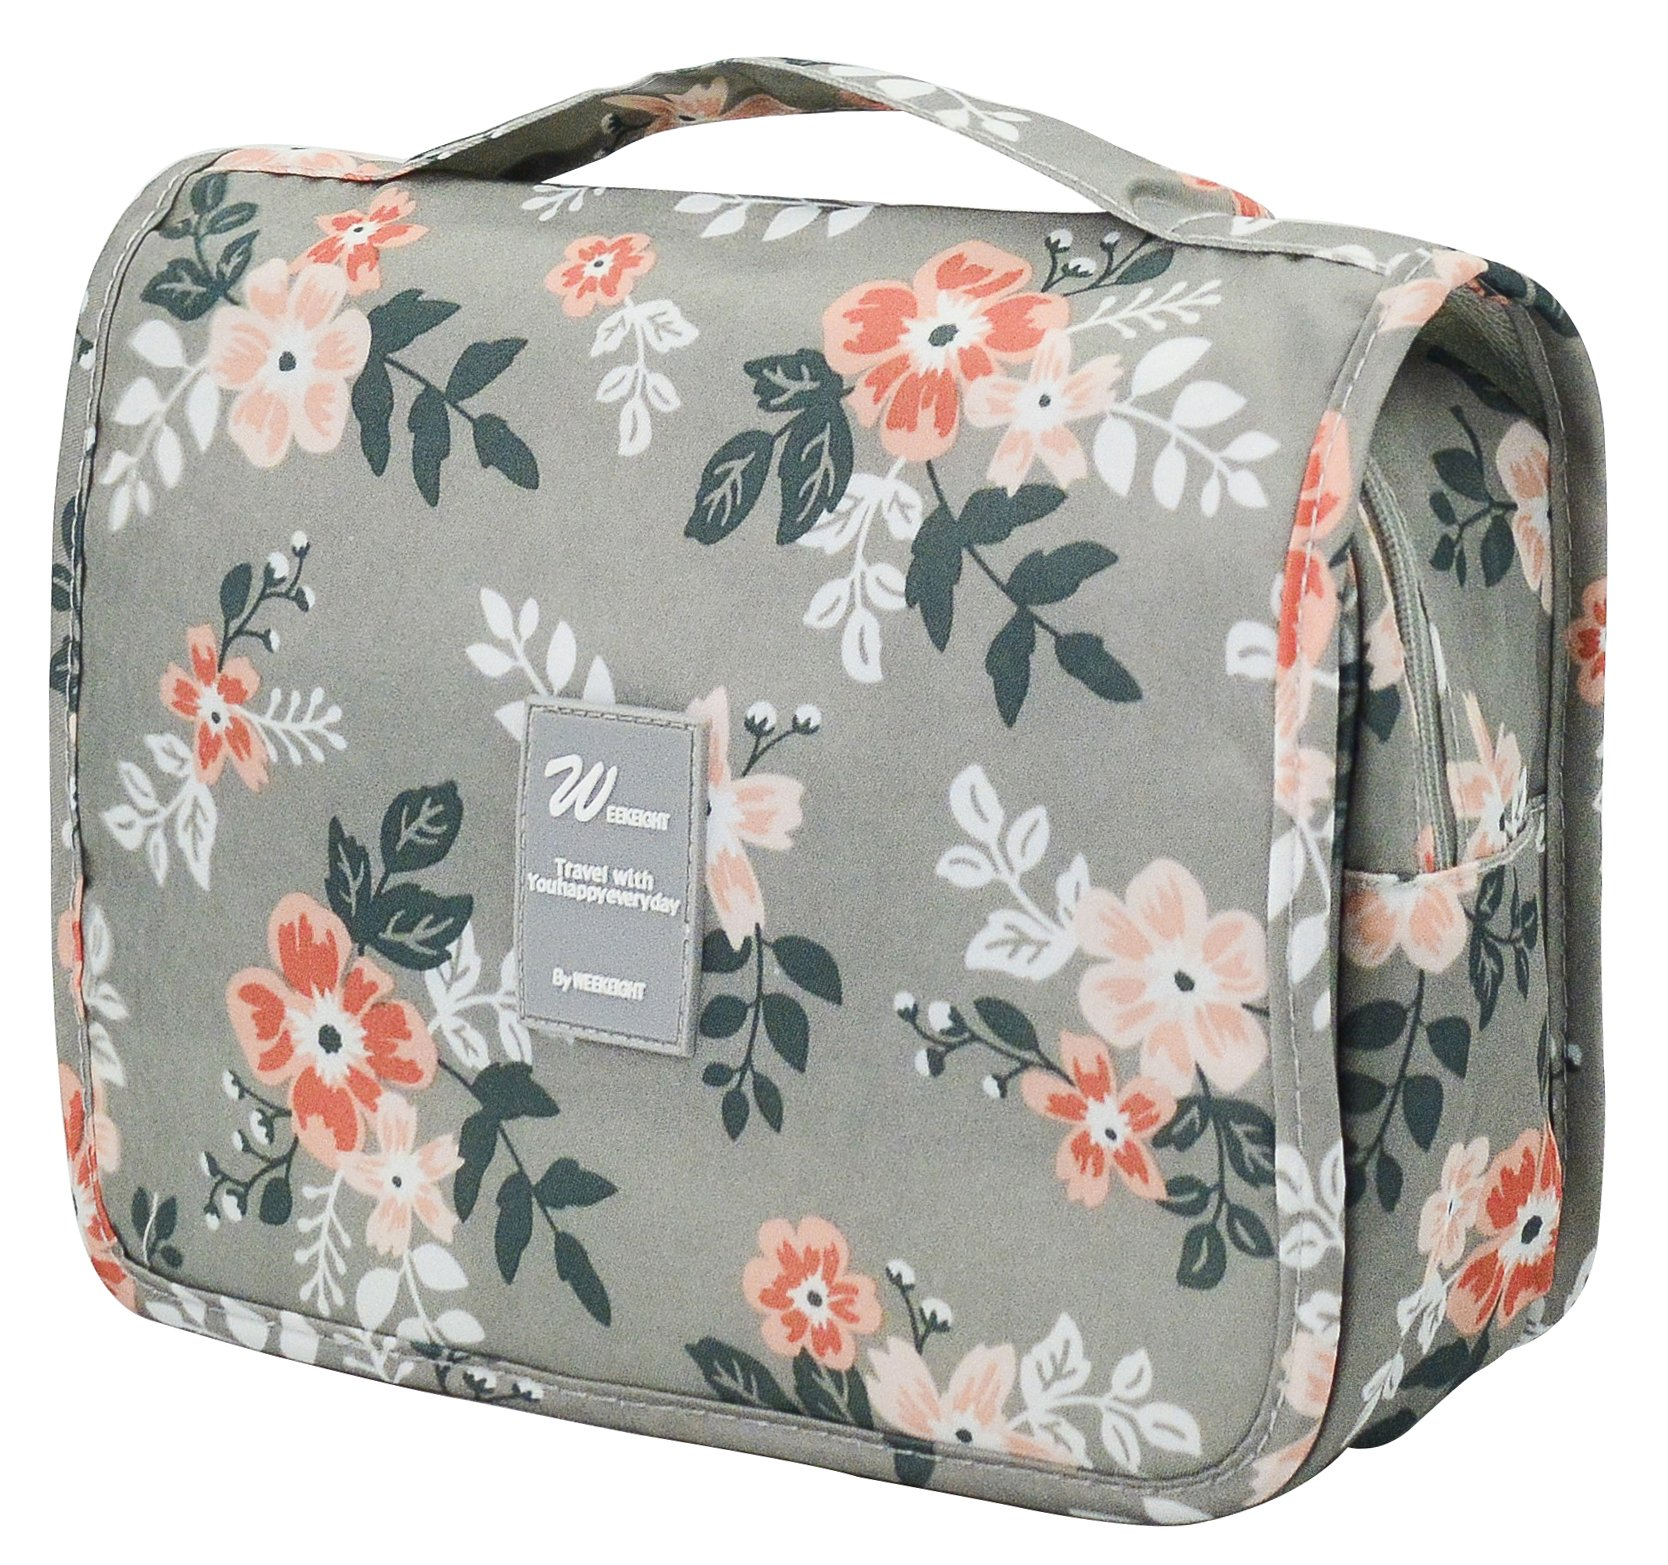 Adigow Hanging Toiletry Bag - Portable Waterproof Cosmetic Makeup Wash Bag for Men & Women - Travel Kit Organizer with Sturdy Hook (Light Grey Flowers)